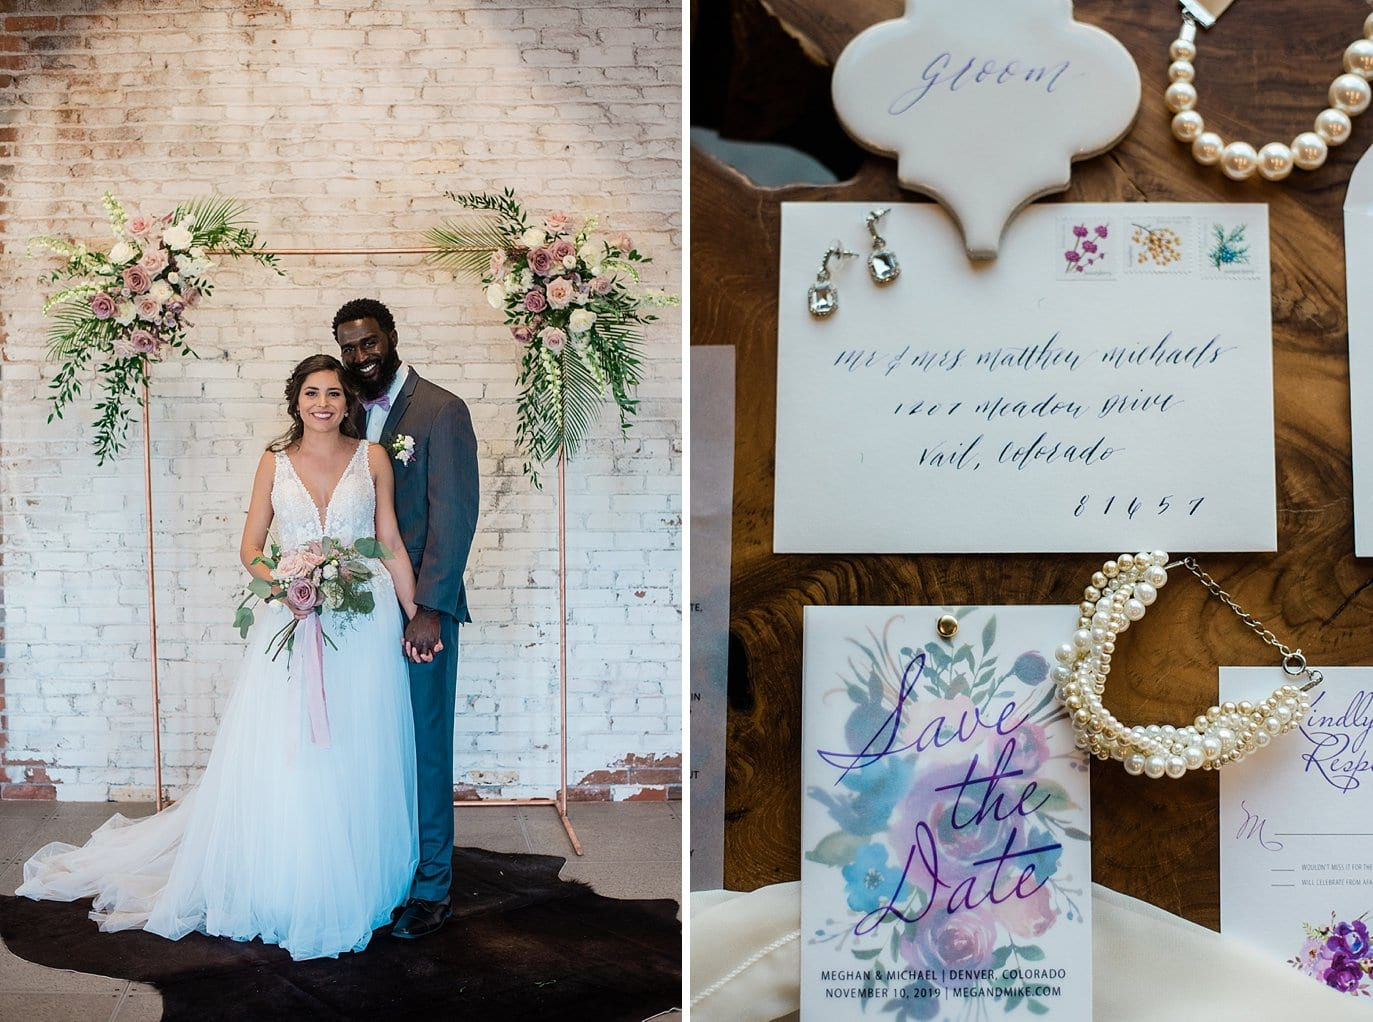 bride and groom by copper pipe ceremony arch with hides on ground plus water colored invitation set and wedding jewelry at Shyft Denver wedding by Lyons wedding photographer Jennie Crate